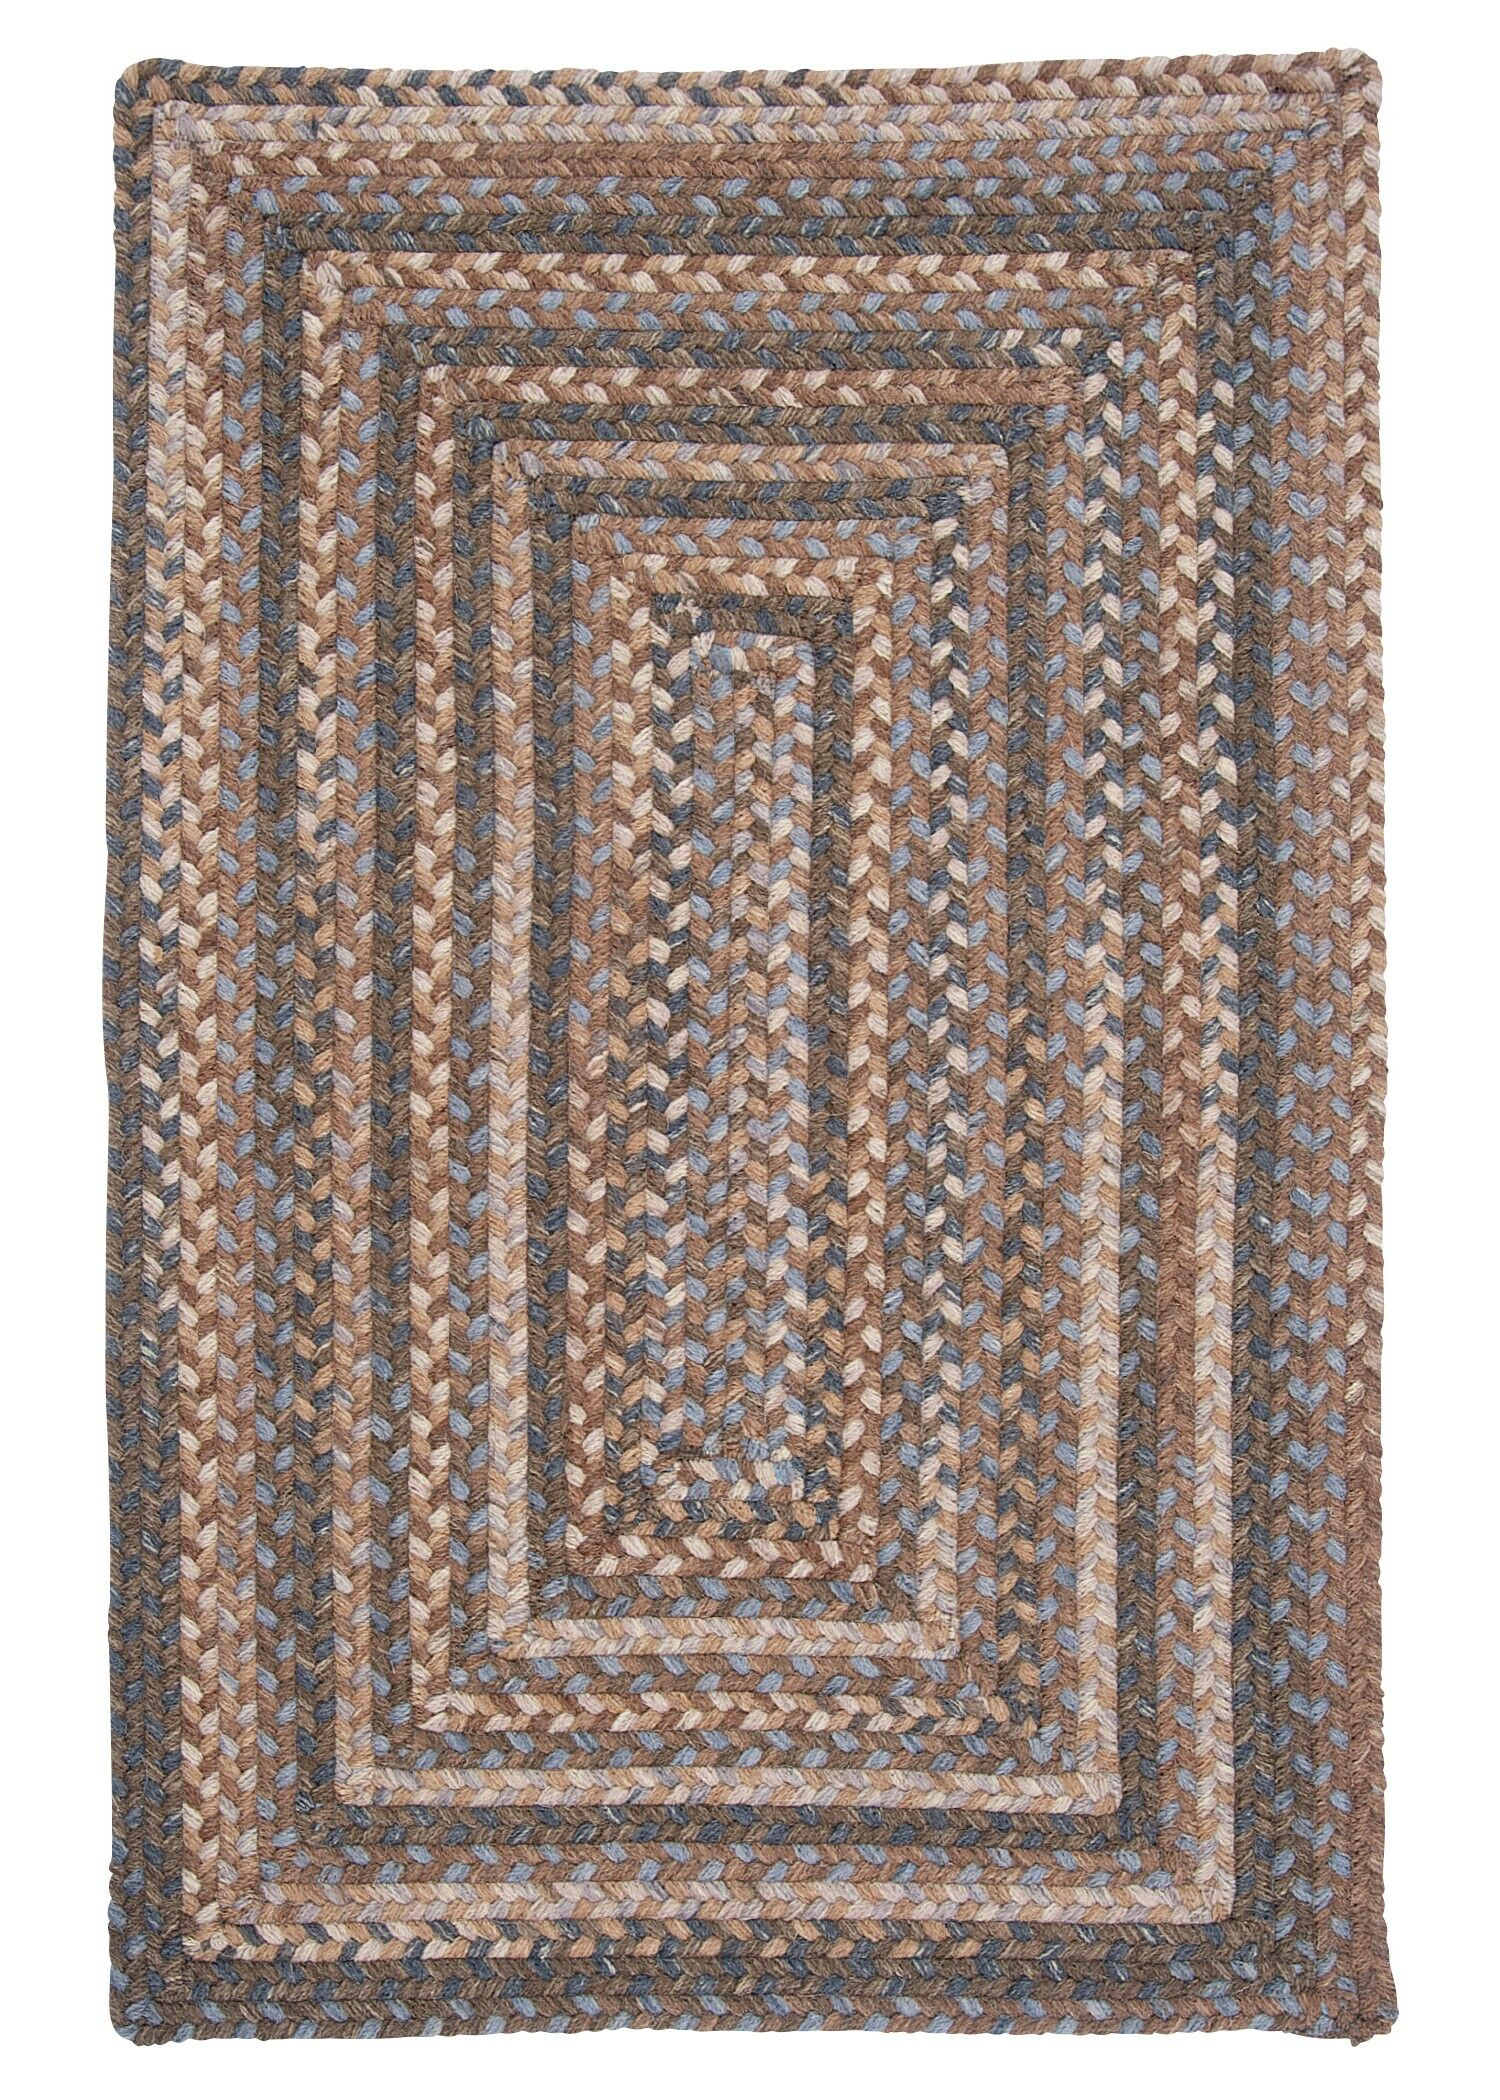 Gloucester Cashew Brown/Tan Area Rug Rug Size: Square 10'